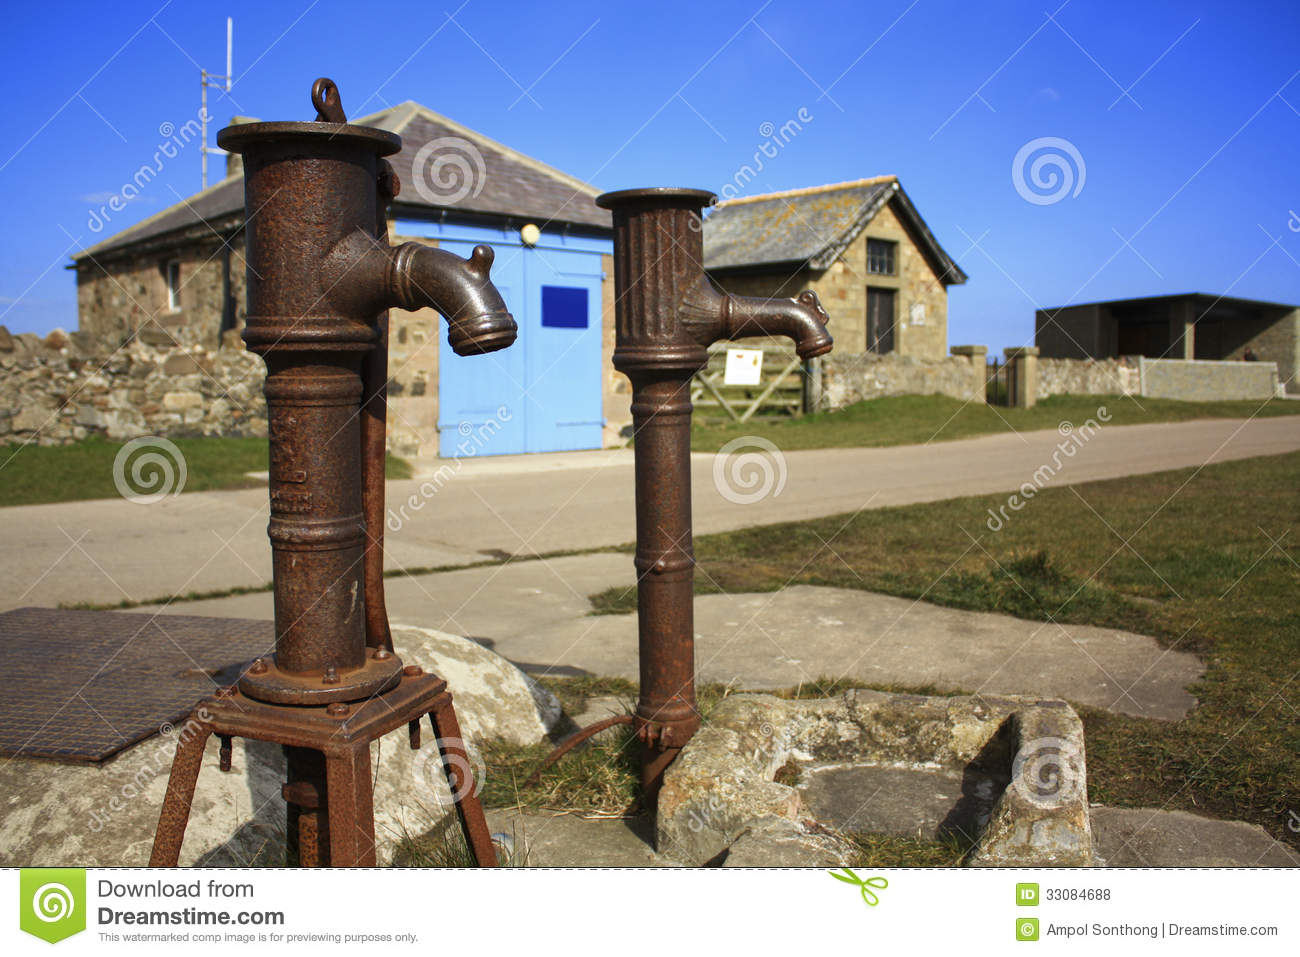 Old water pump. stock photo. Image of faucet, pump, handle - 33084688